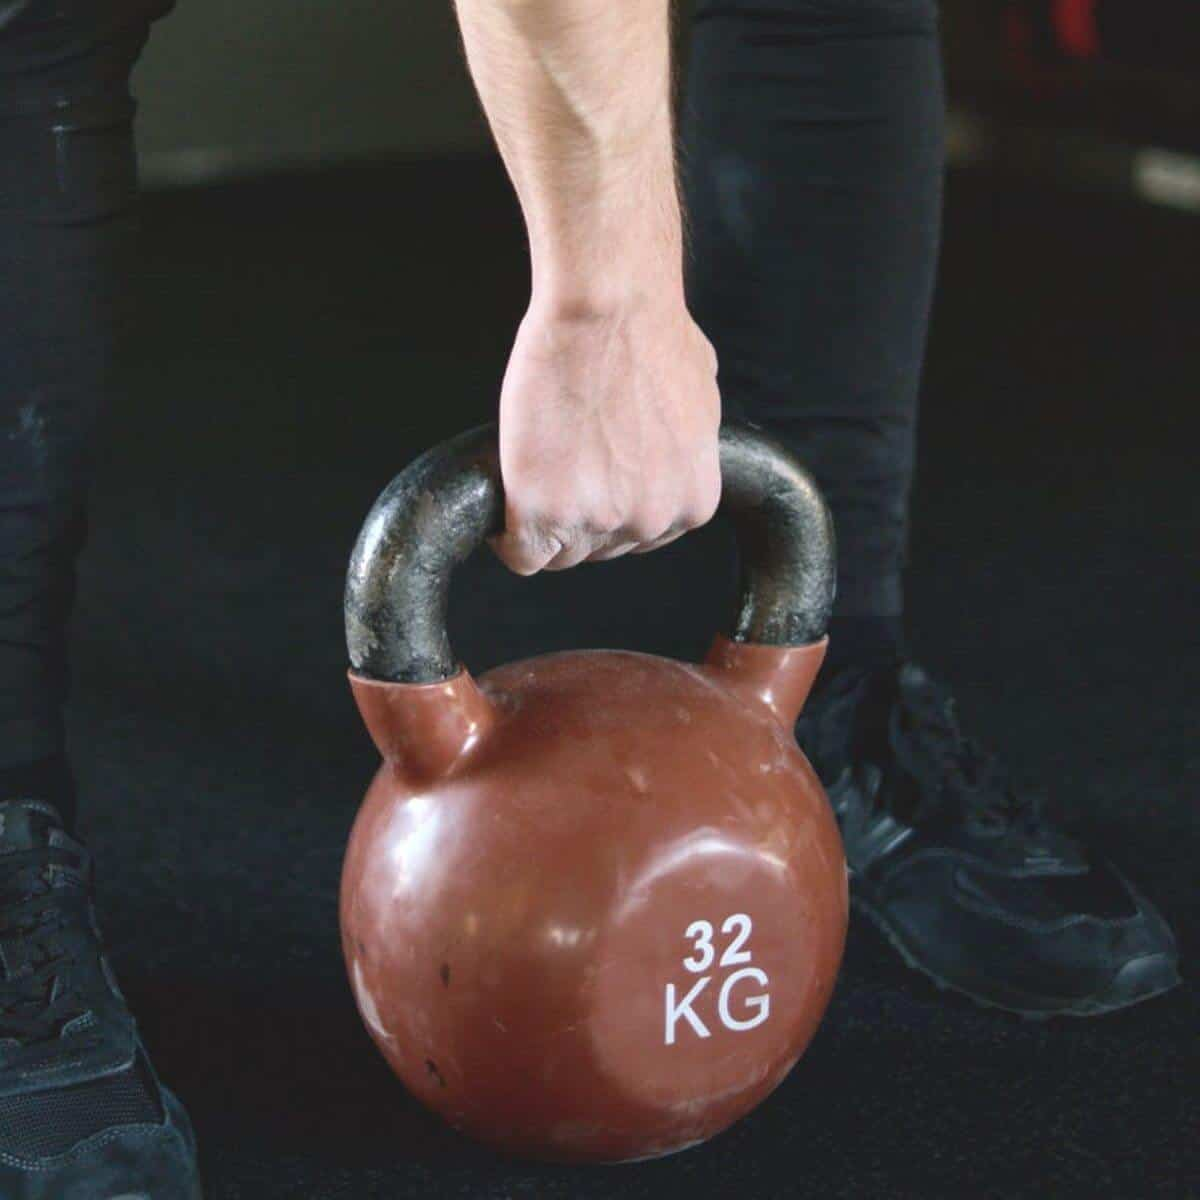 person holding a red kettlebell.